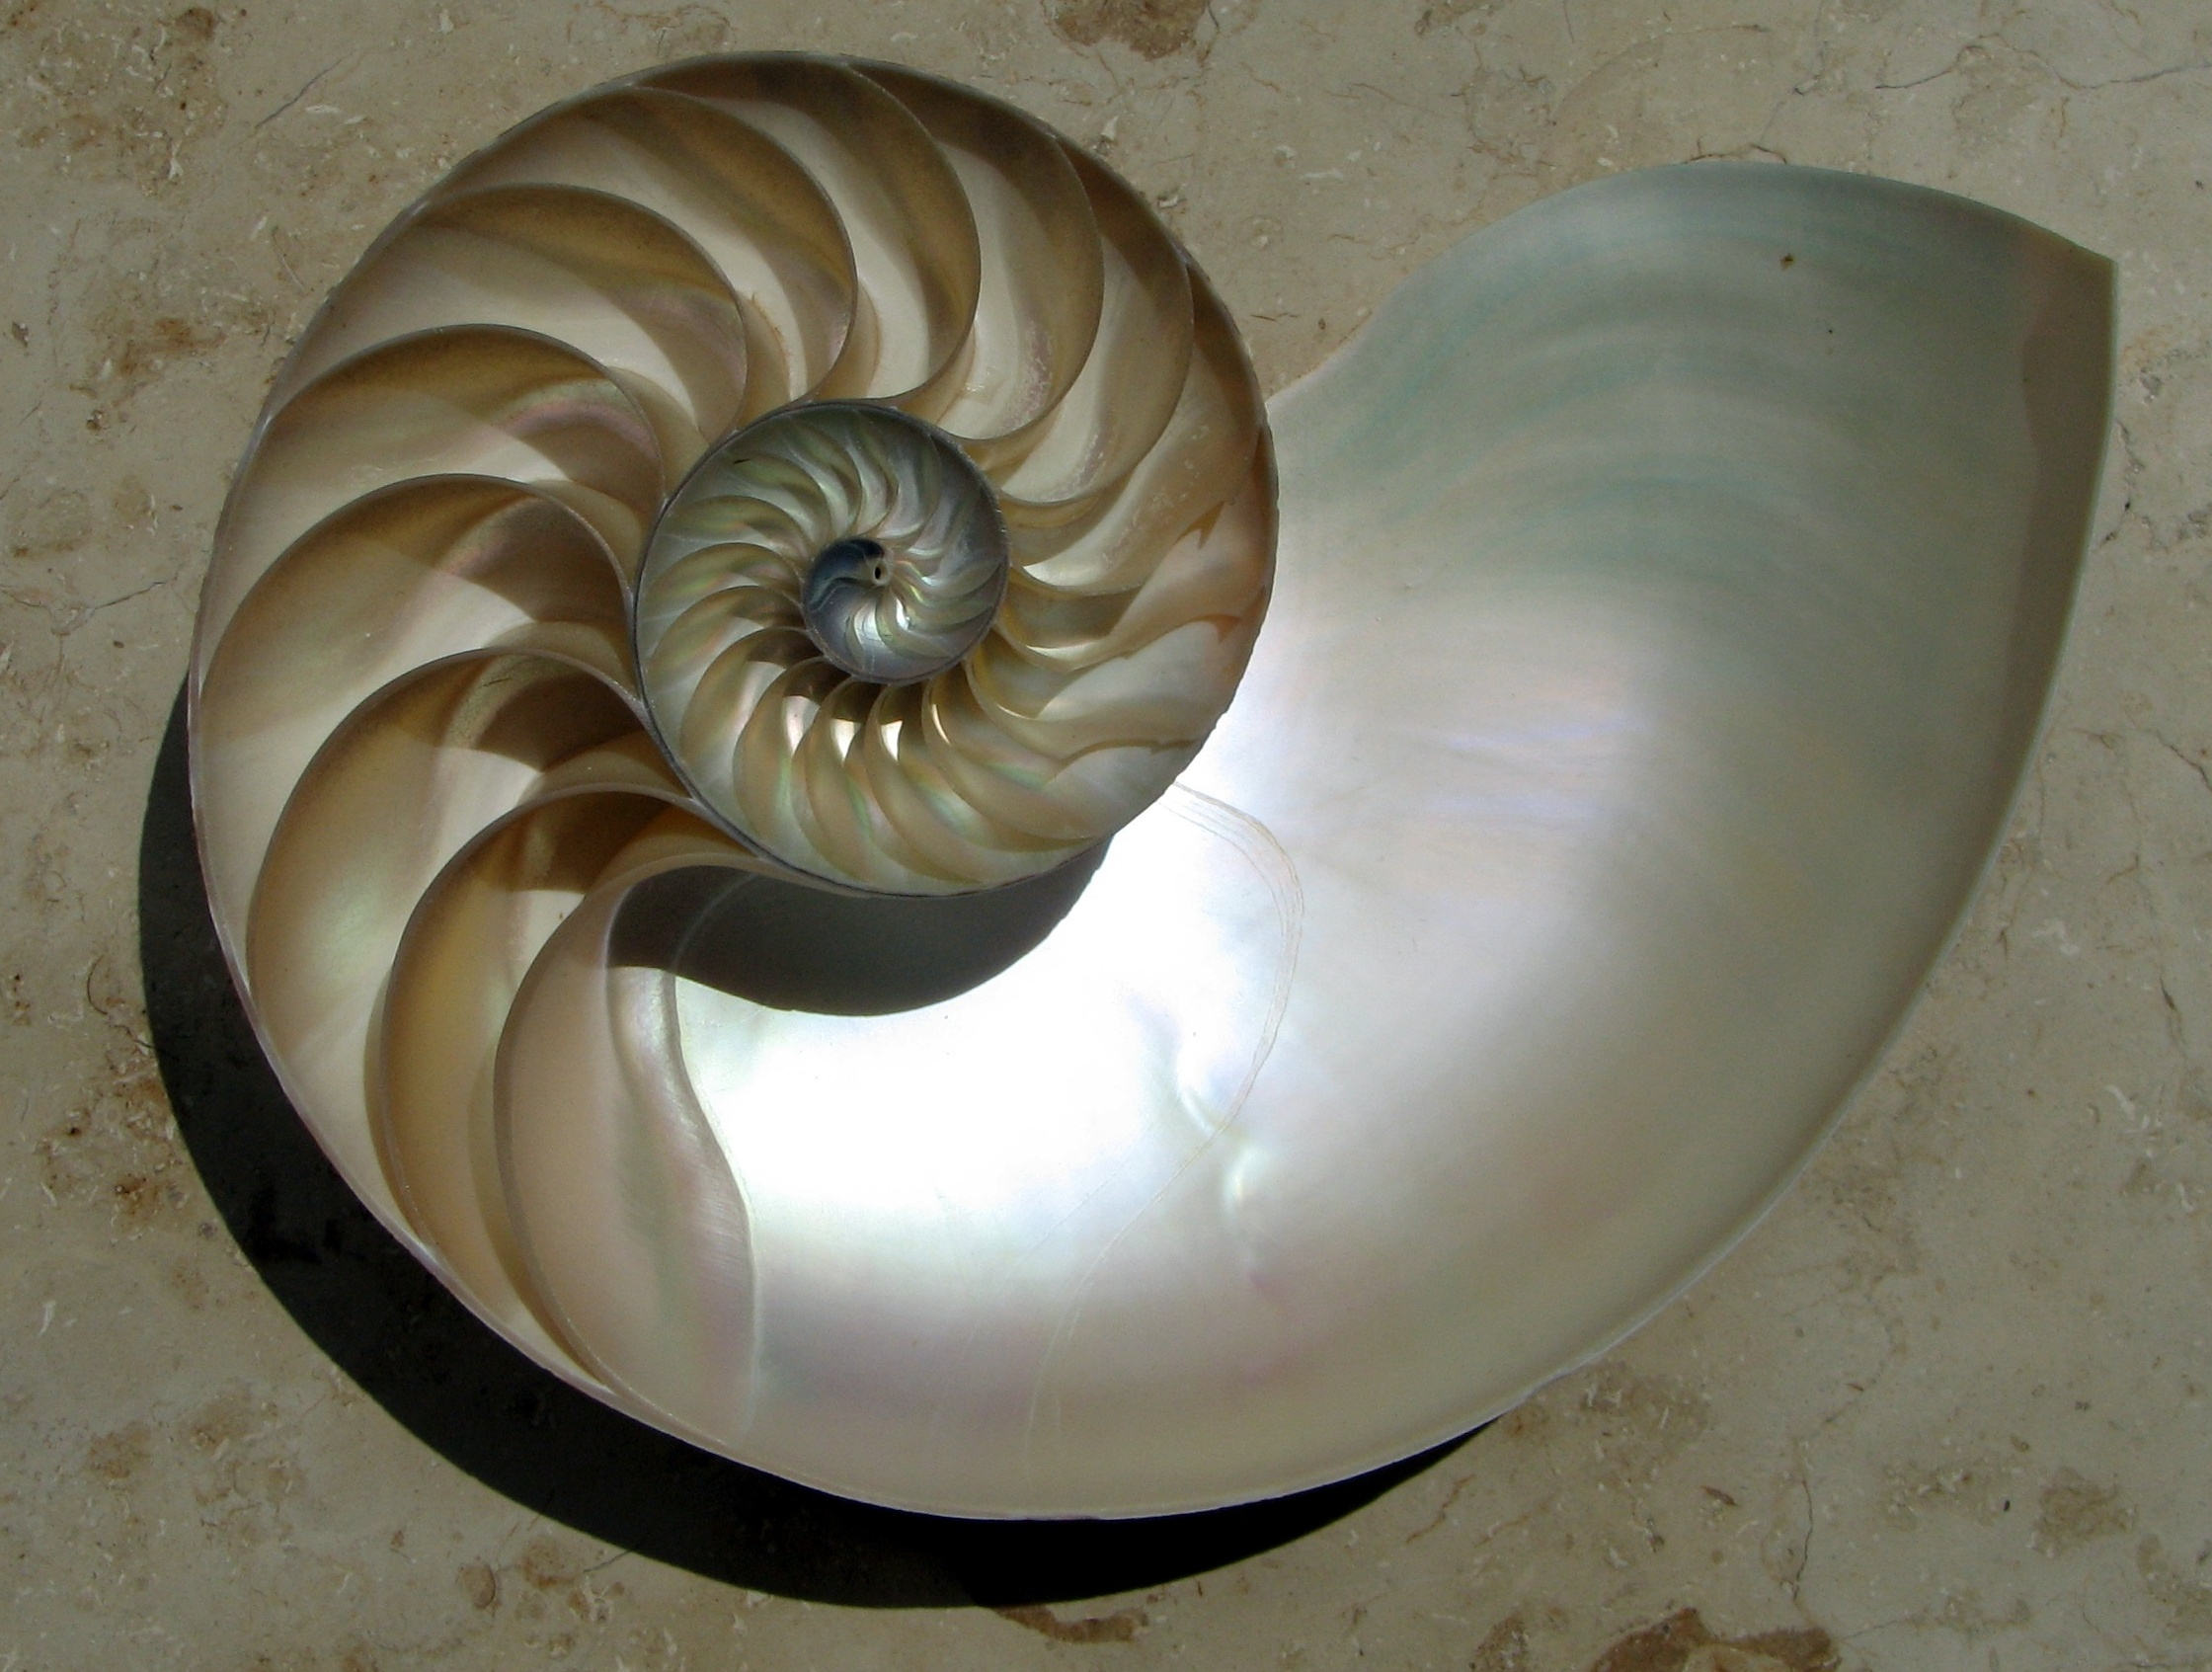 https://upload.wikimedia.org/wikipedia/commons/0/08/NautilusCutawayLogarithmicSpiral.jpg